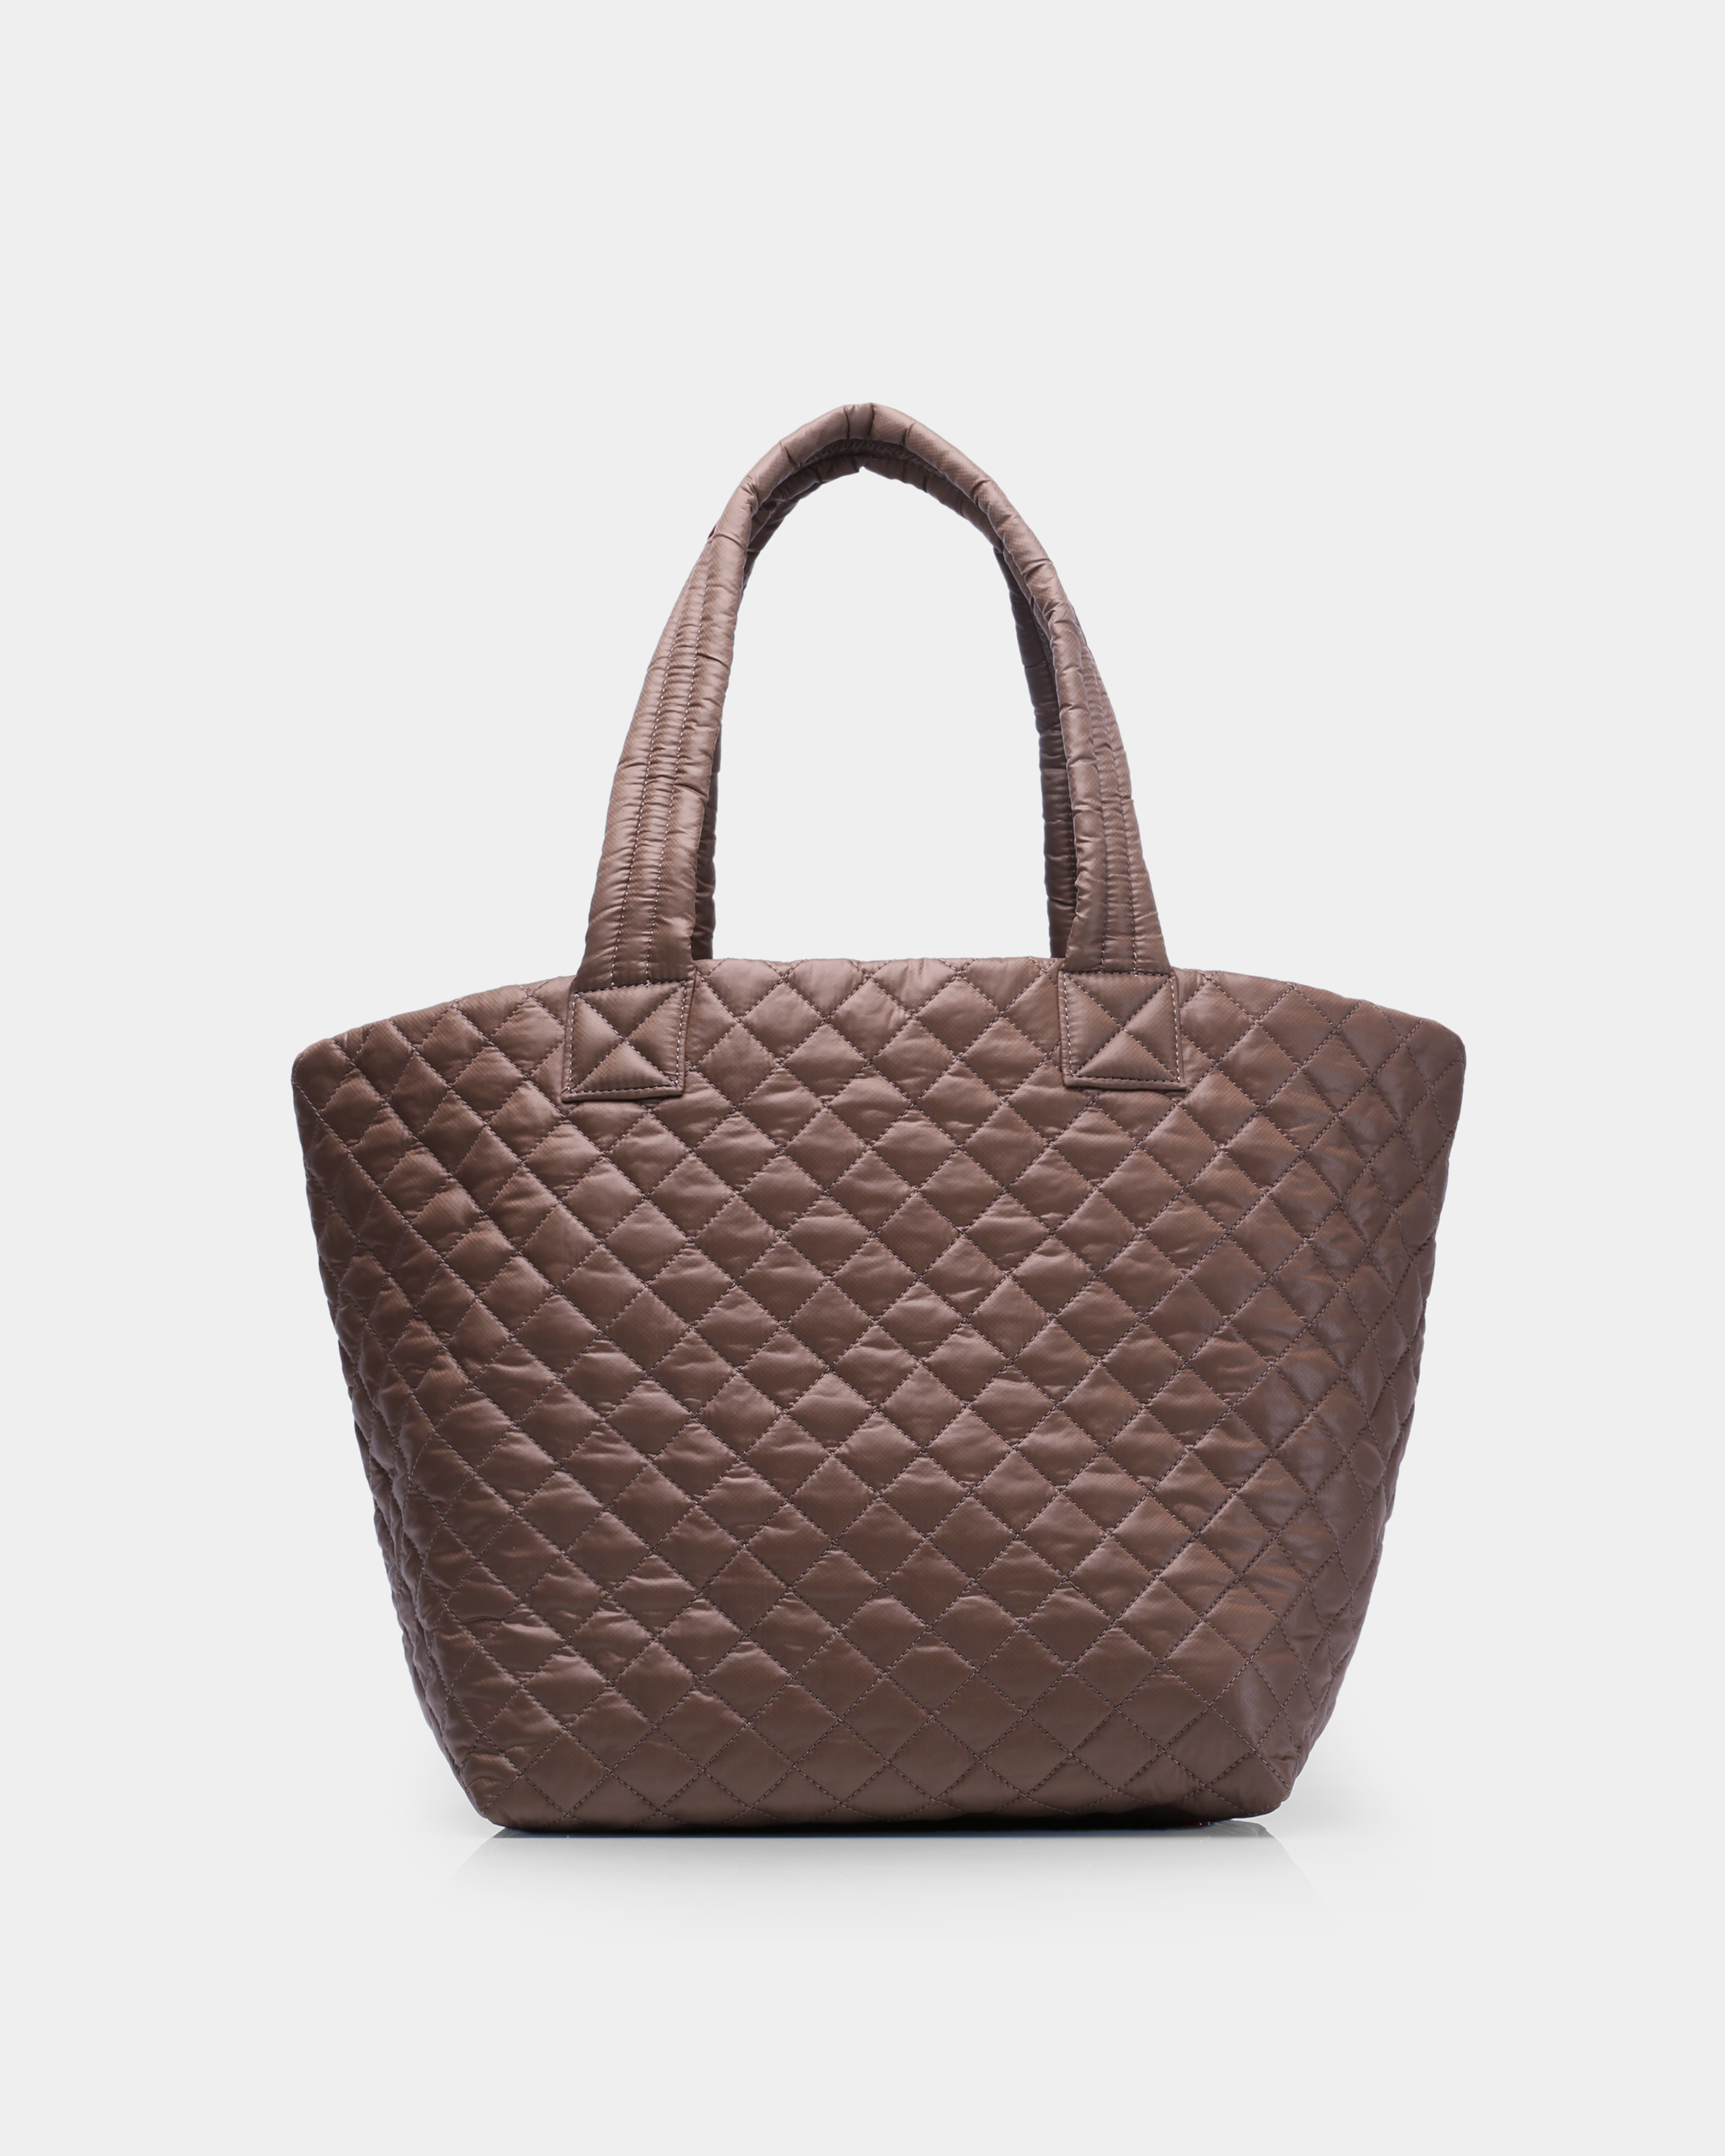 Medium Metro Tote - Fawn Quilted Oxford (3761313) in color Fawn